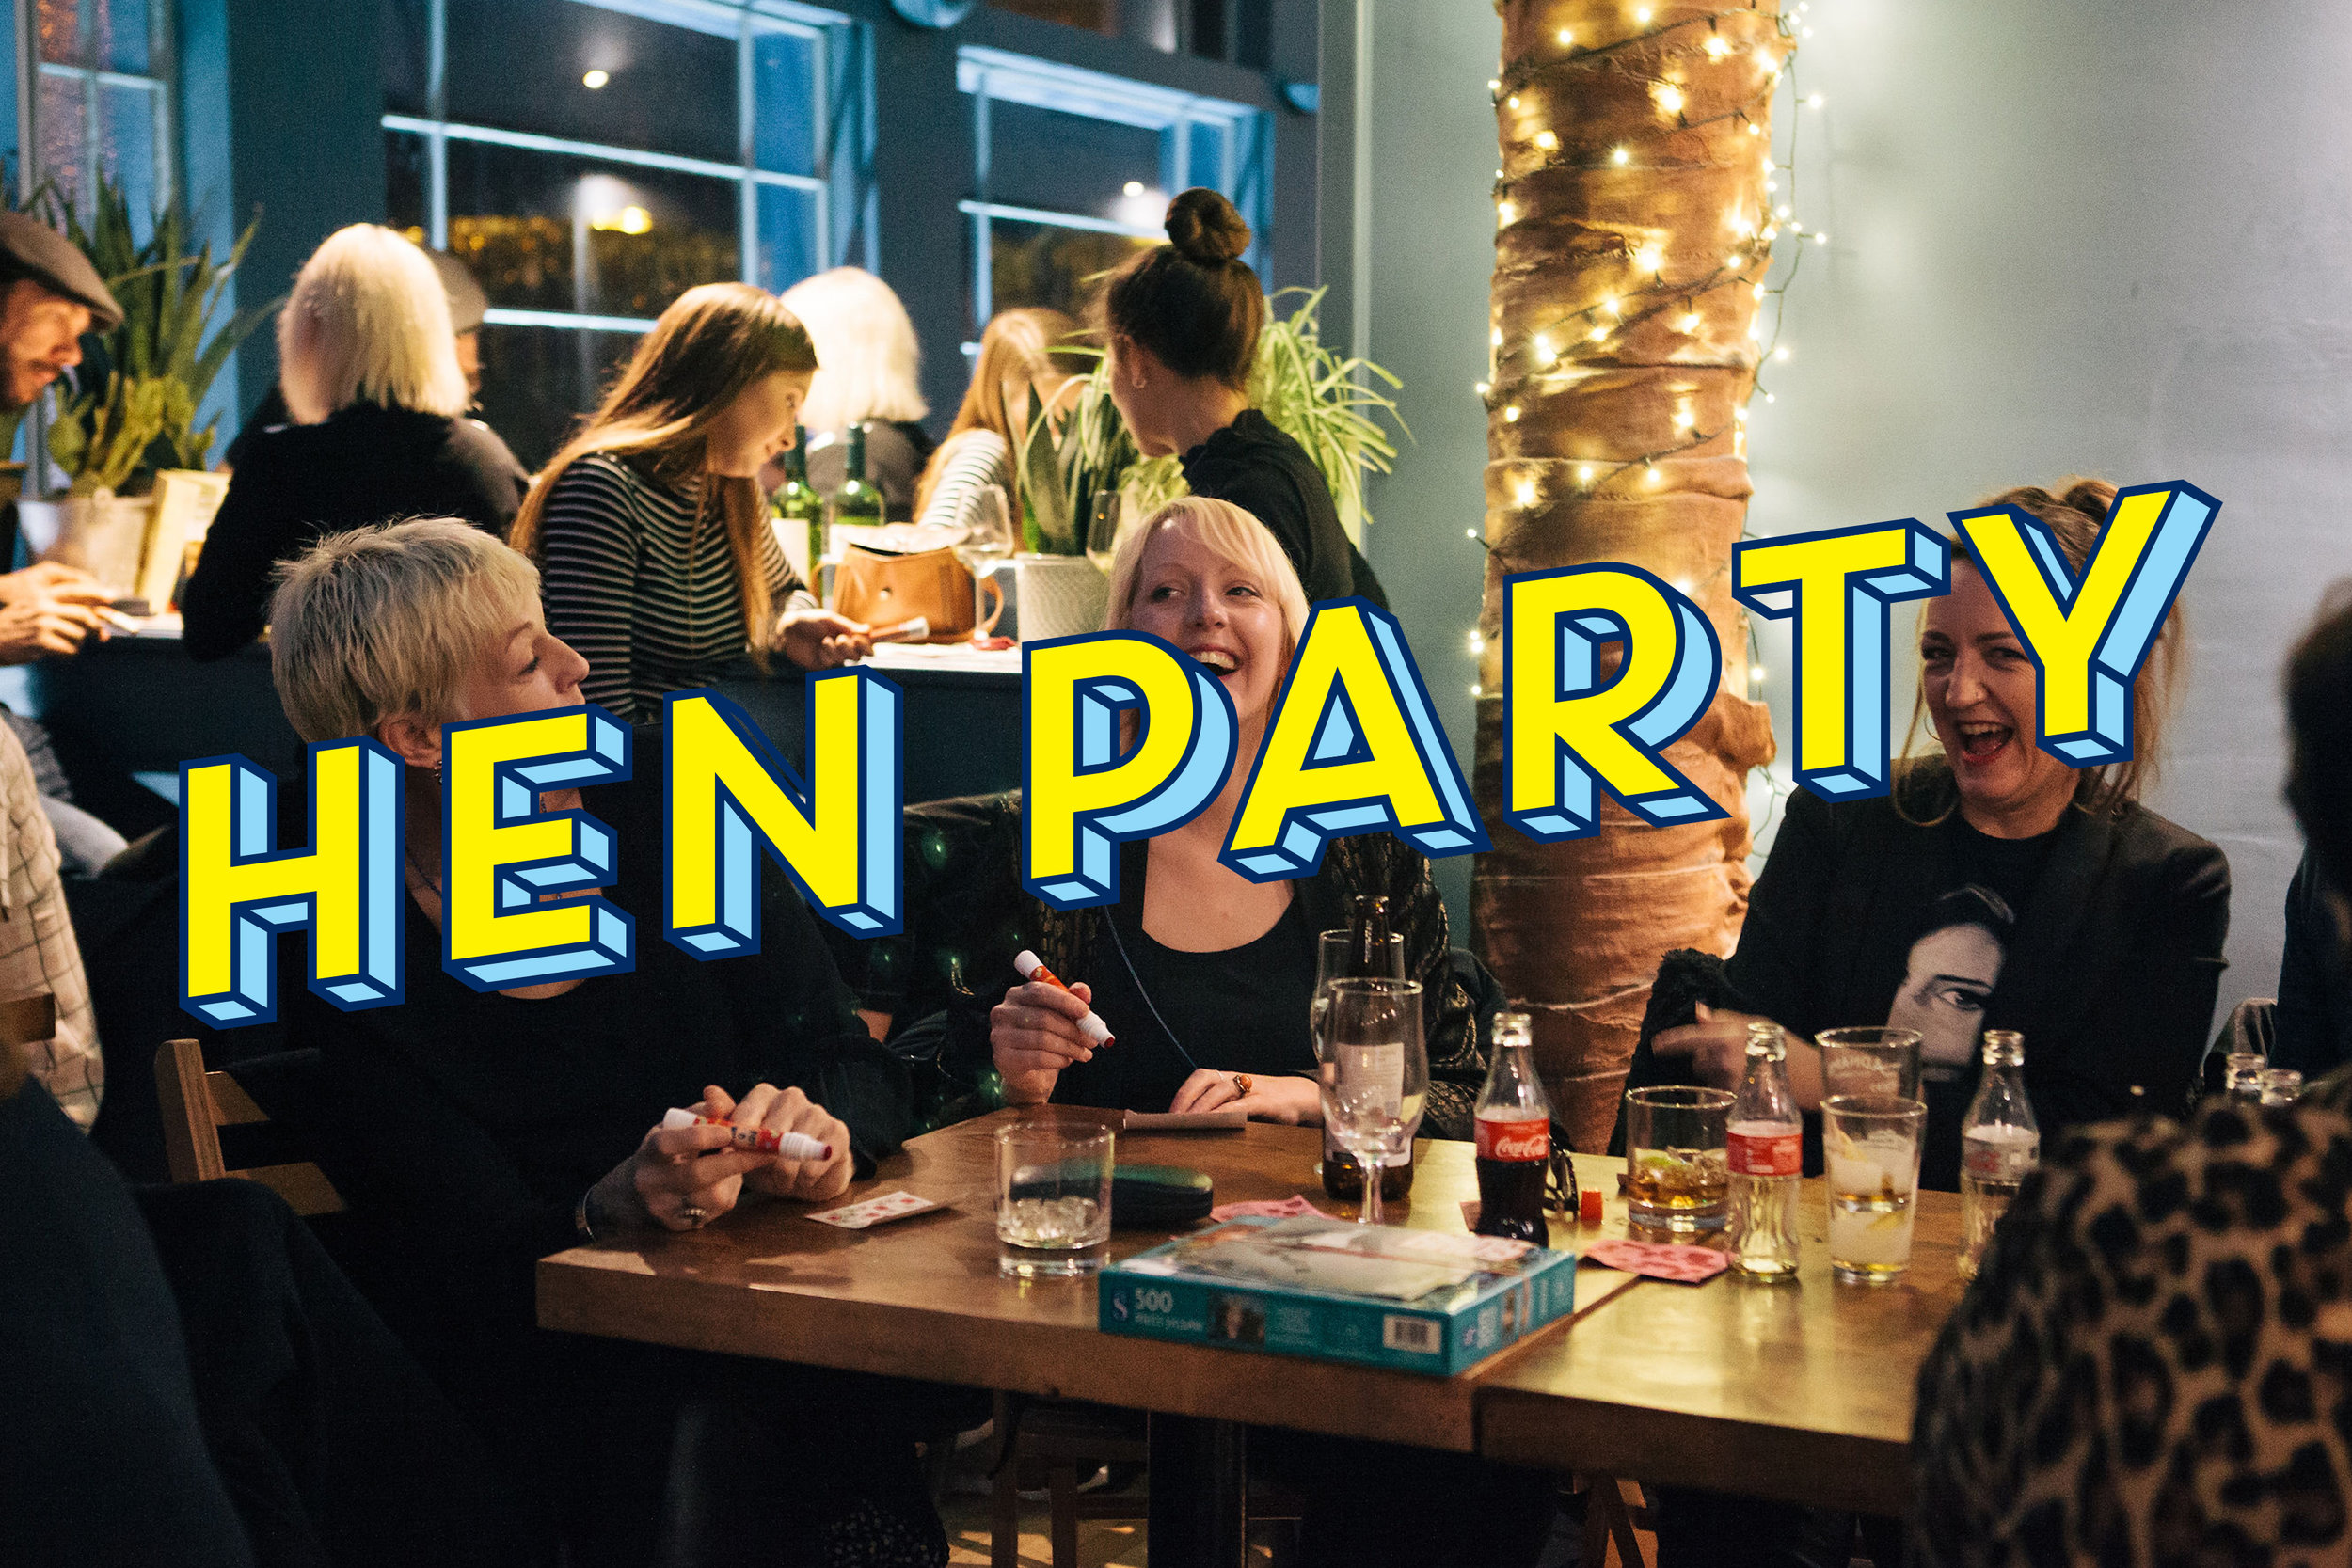 If you're planning a hen party in Norwich and looking for unique hen party ideas, we have plenty of classy activities to make your hen night special.    More Info